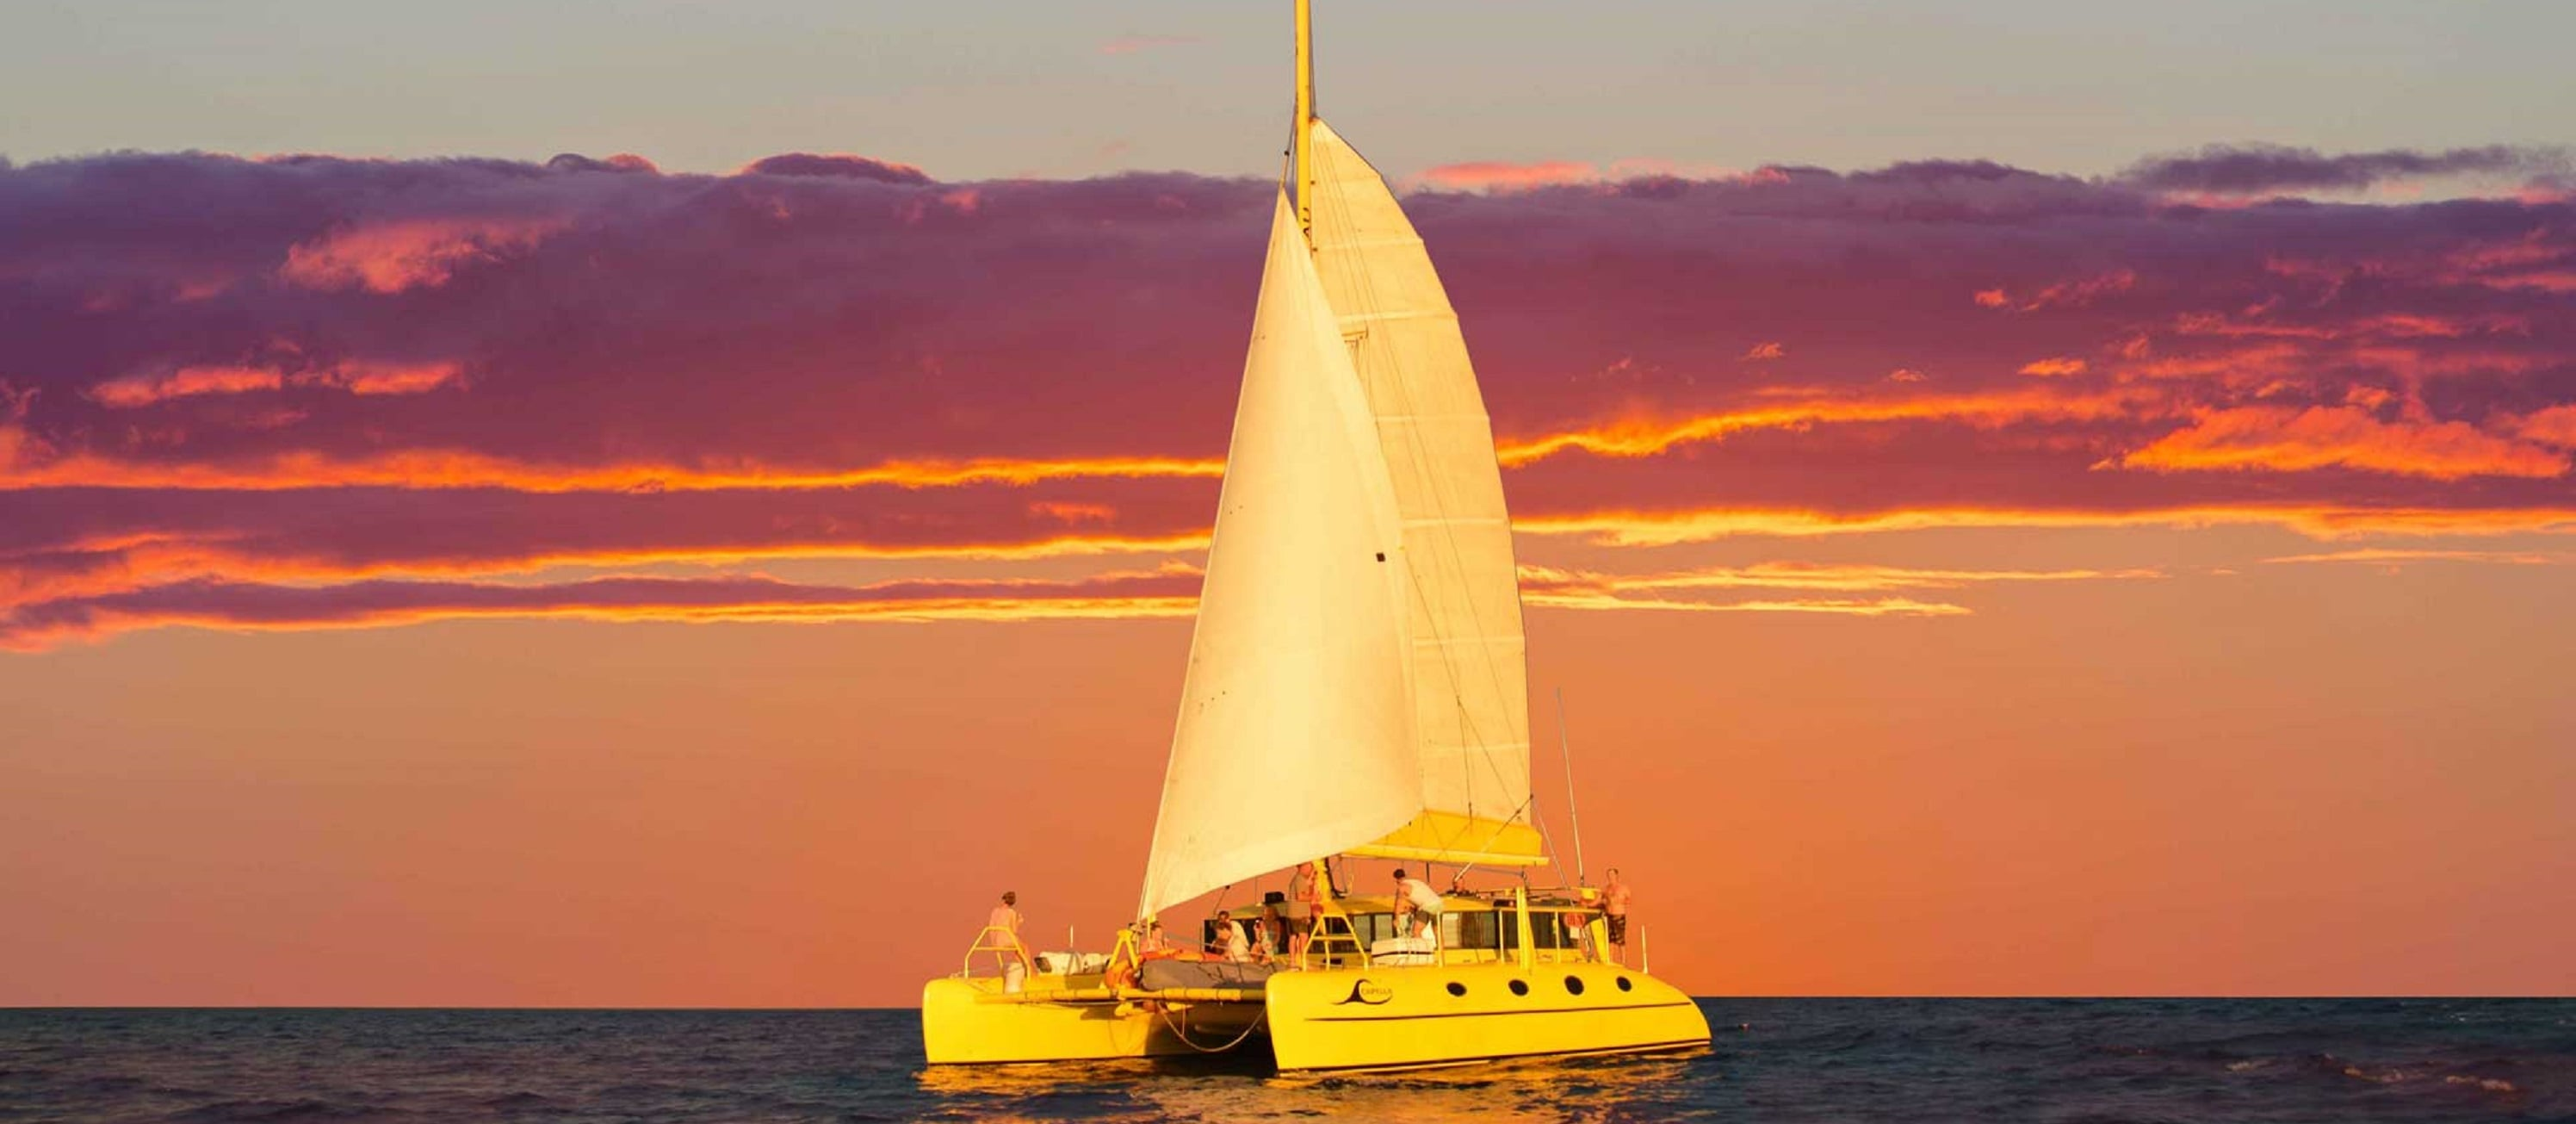 Sunset Cruise Perth | Fremantle Twilight Sails | What to do